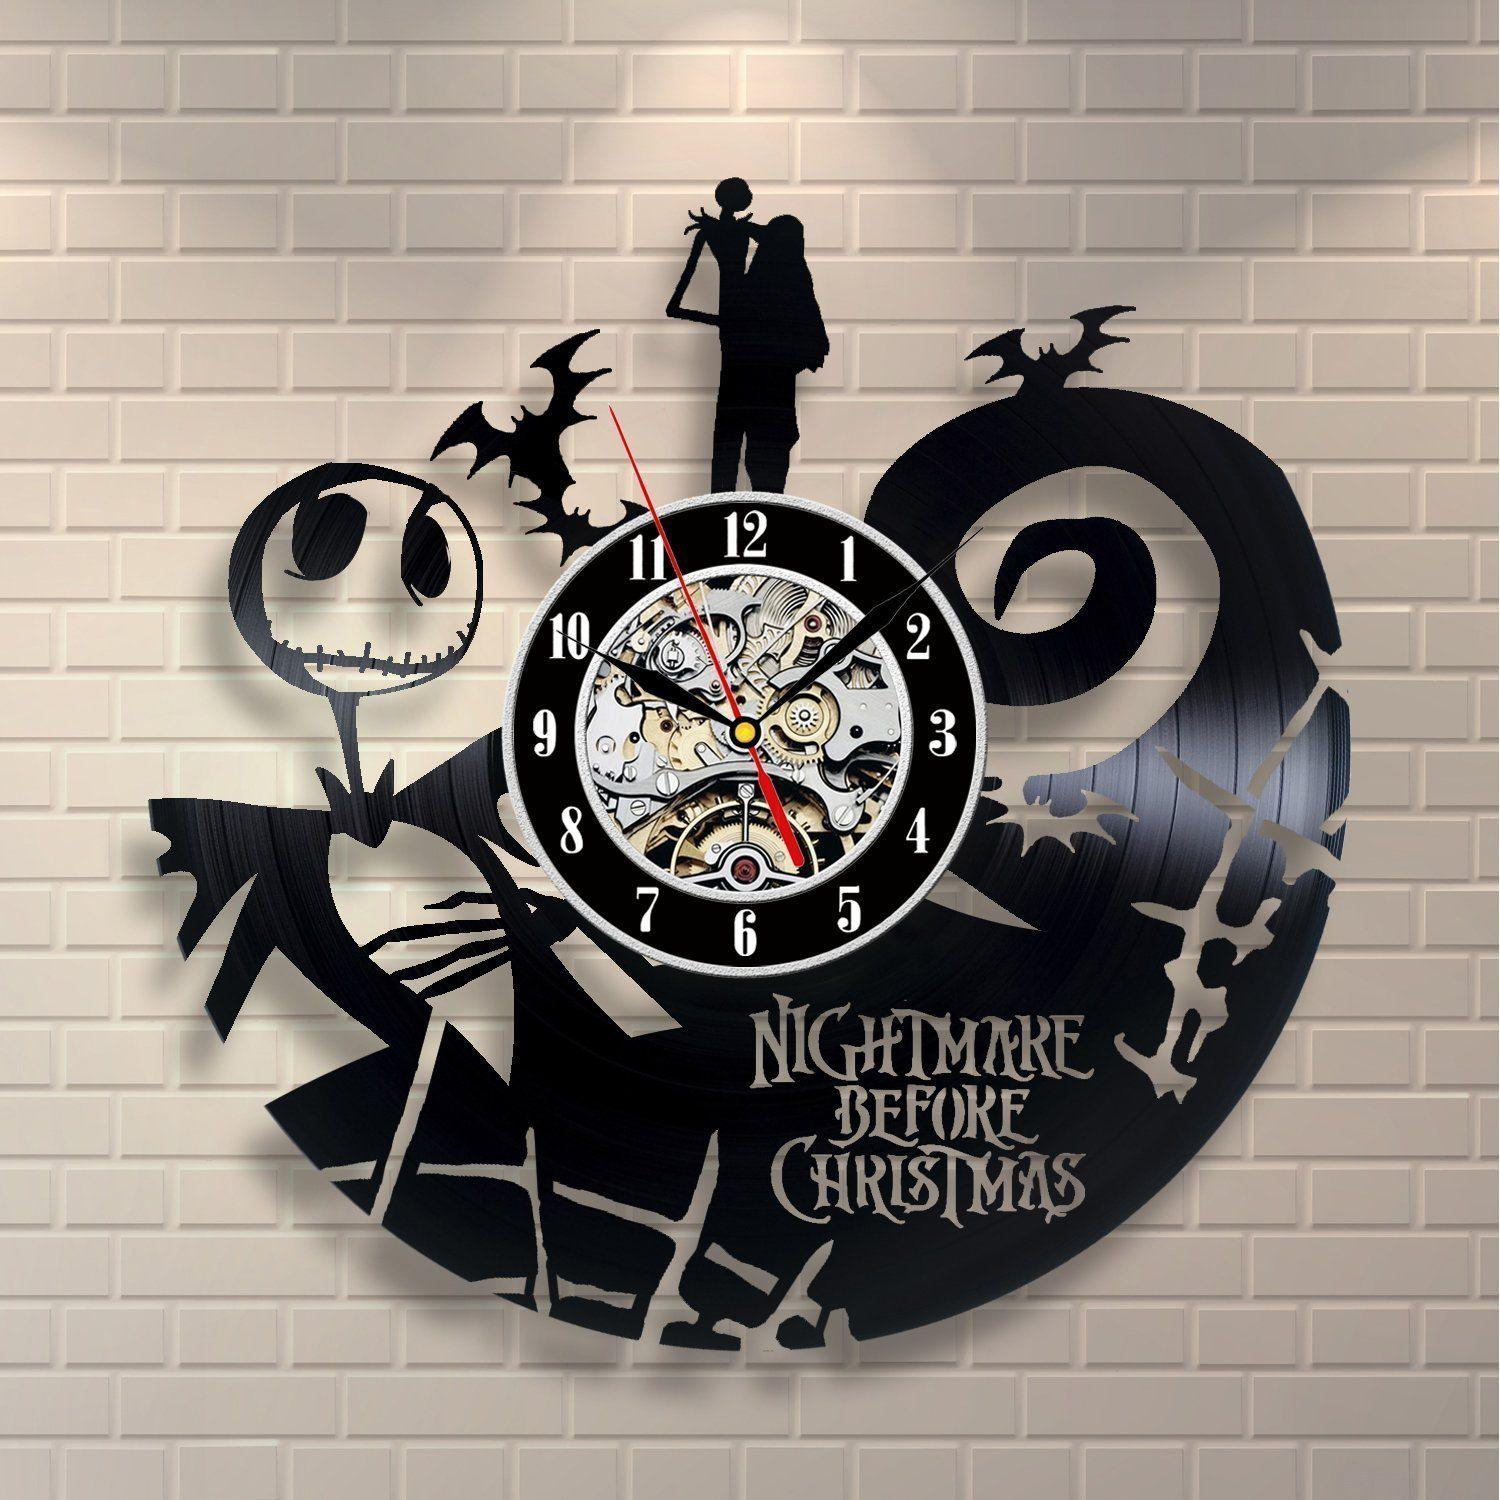 The nightmare before christmas jack skellington gift wall clock the nightmare before christmas jack skellington gift wall clock story design clock wall christmas gift for friendhomeoffice and room decor massive wall amipublicfo Choice Image